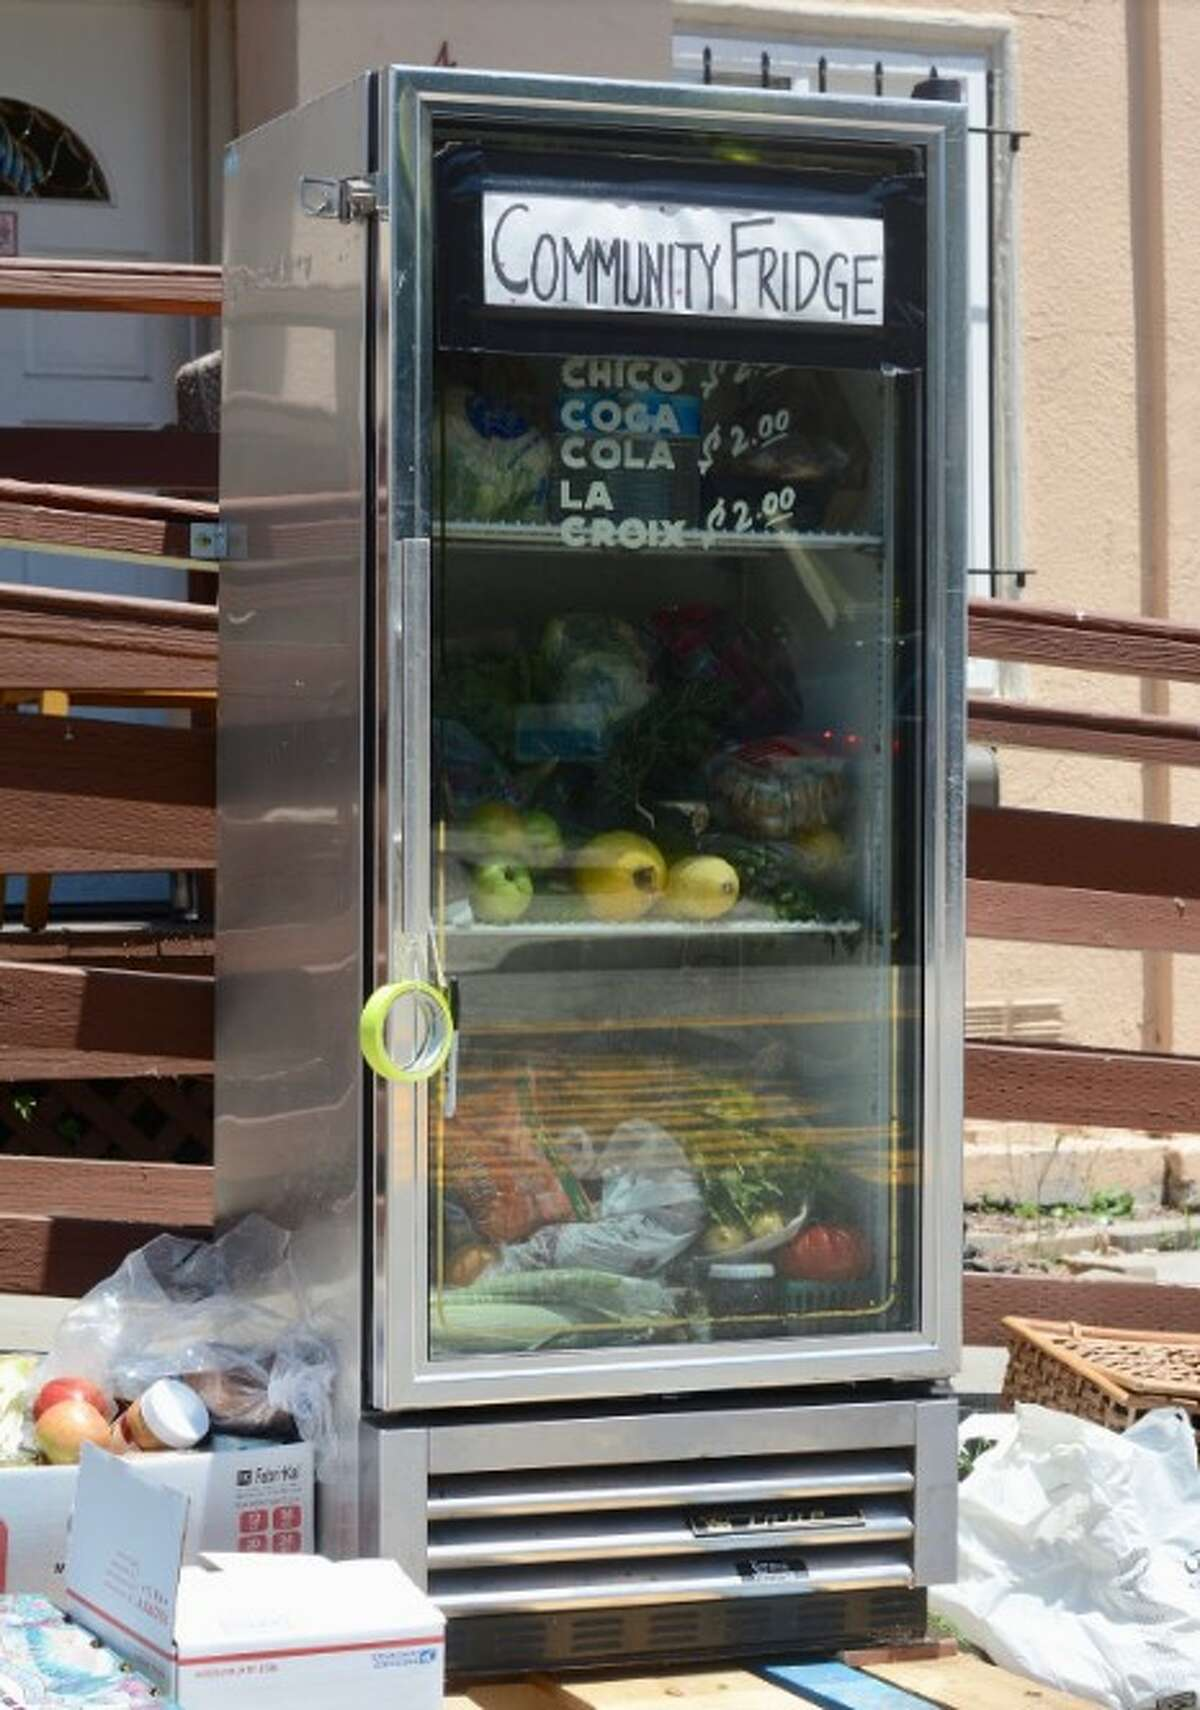 A Town Fridge on 16th and West in Oakland, California.